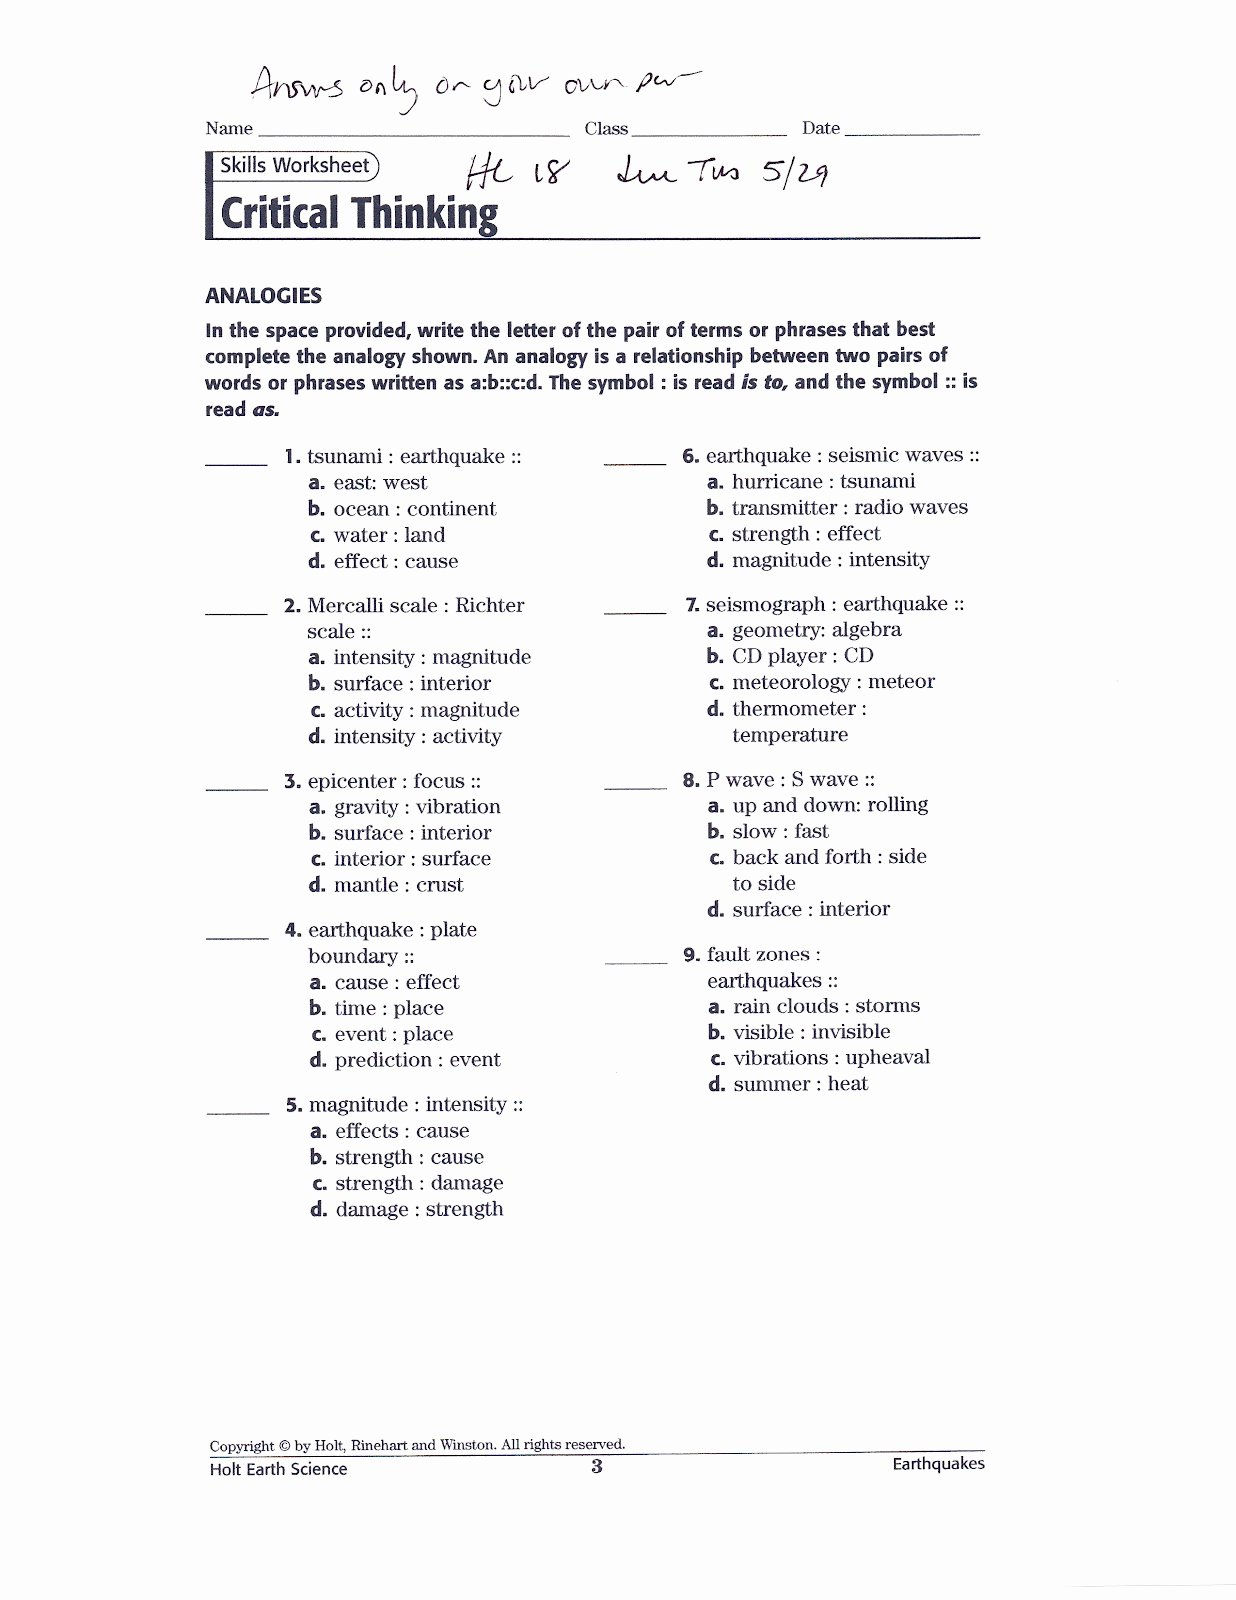 Skills Worksheet Critical Thinking Analogies Unique Critical Thinking 8th Grade